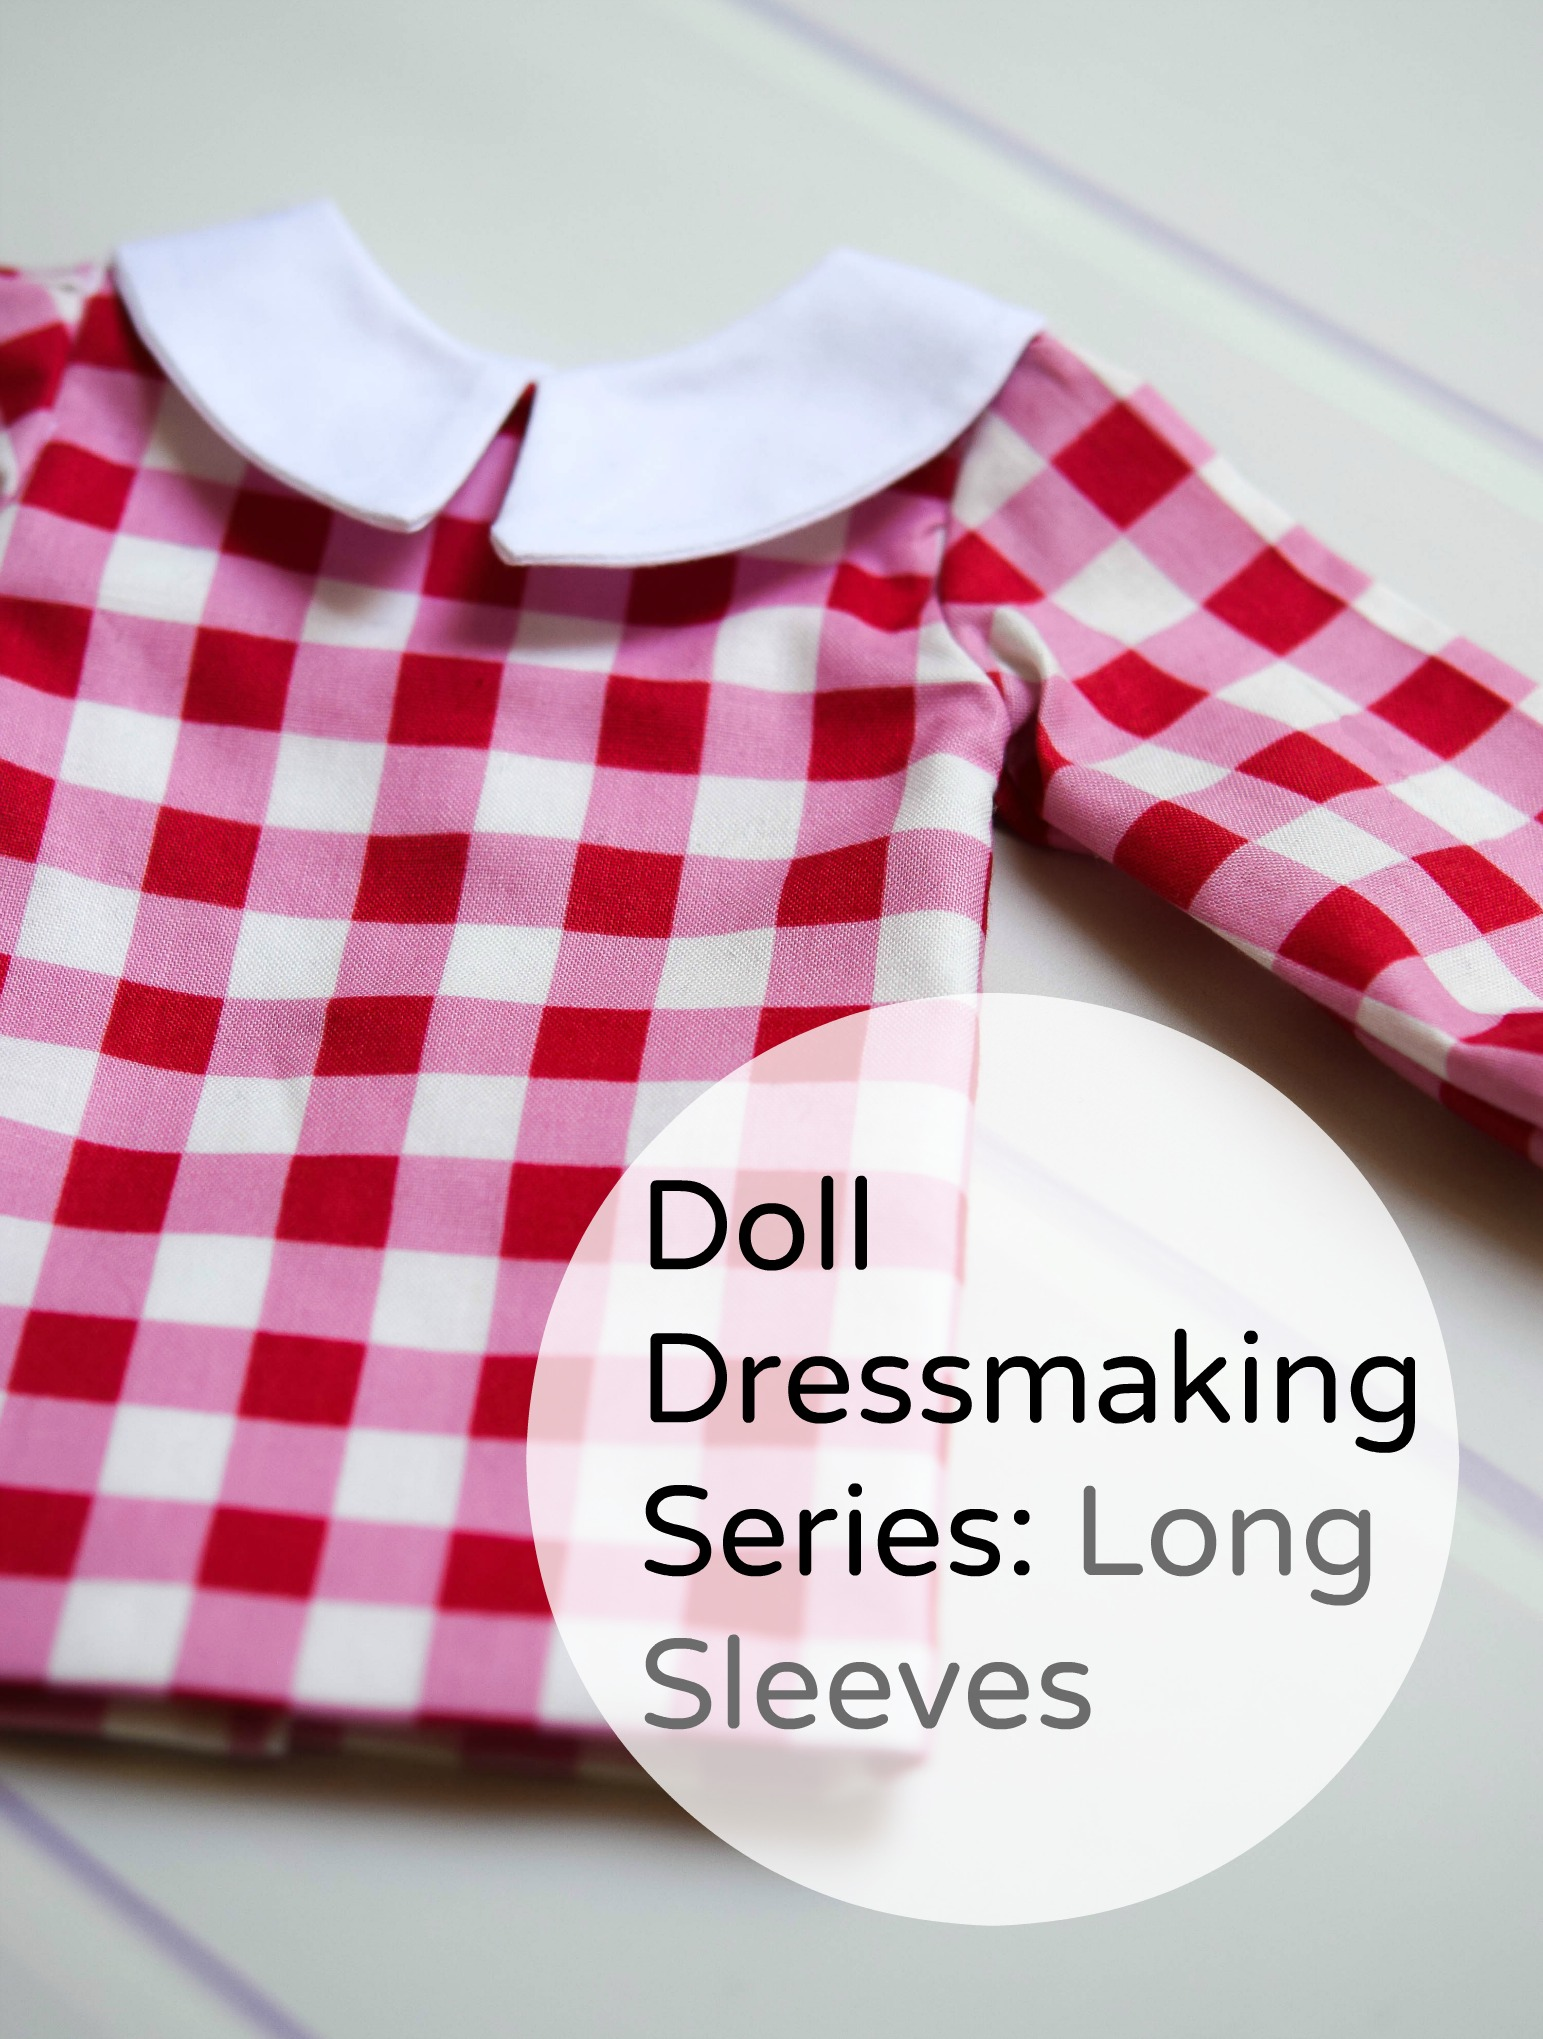 Doll Dressmaking long sleeves